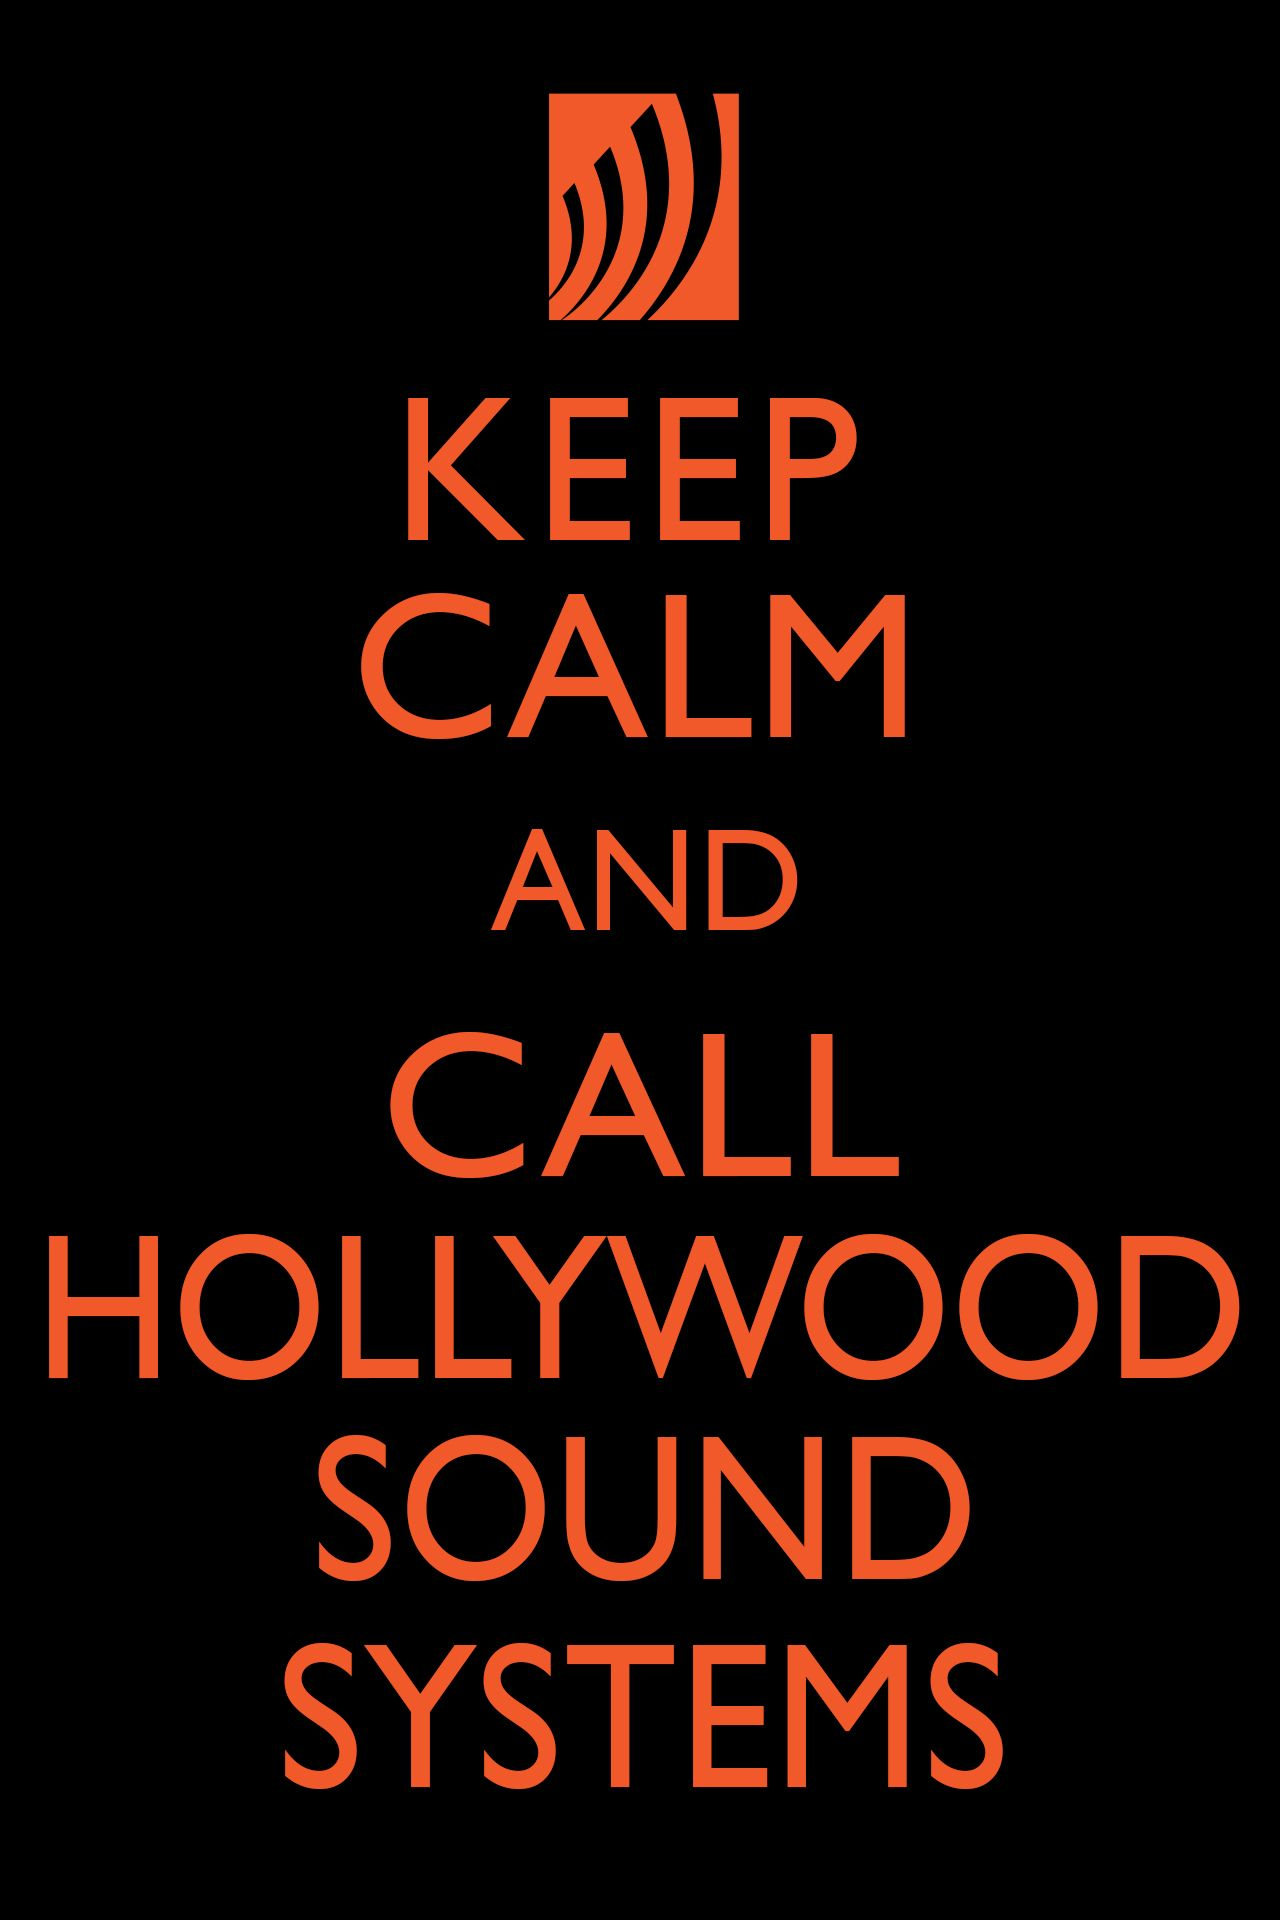 Hollywood Sound Systems can help with your Pro Audio Reopening Checklist - Call Us!